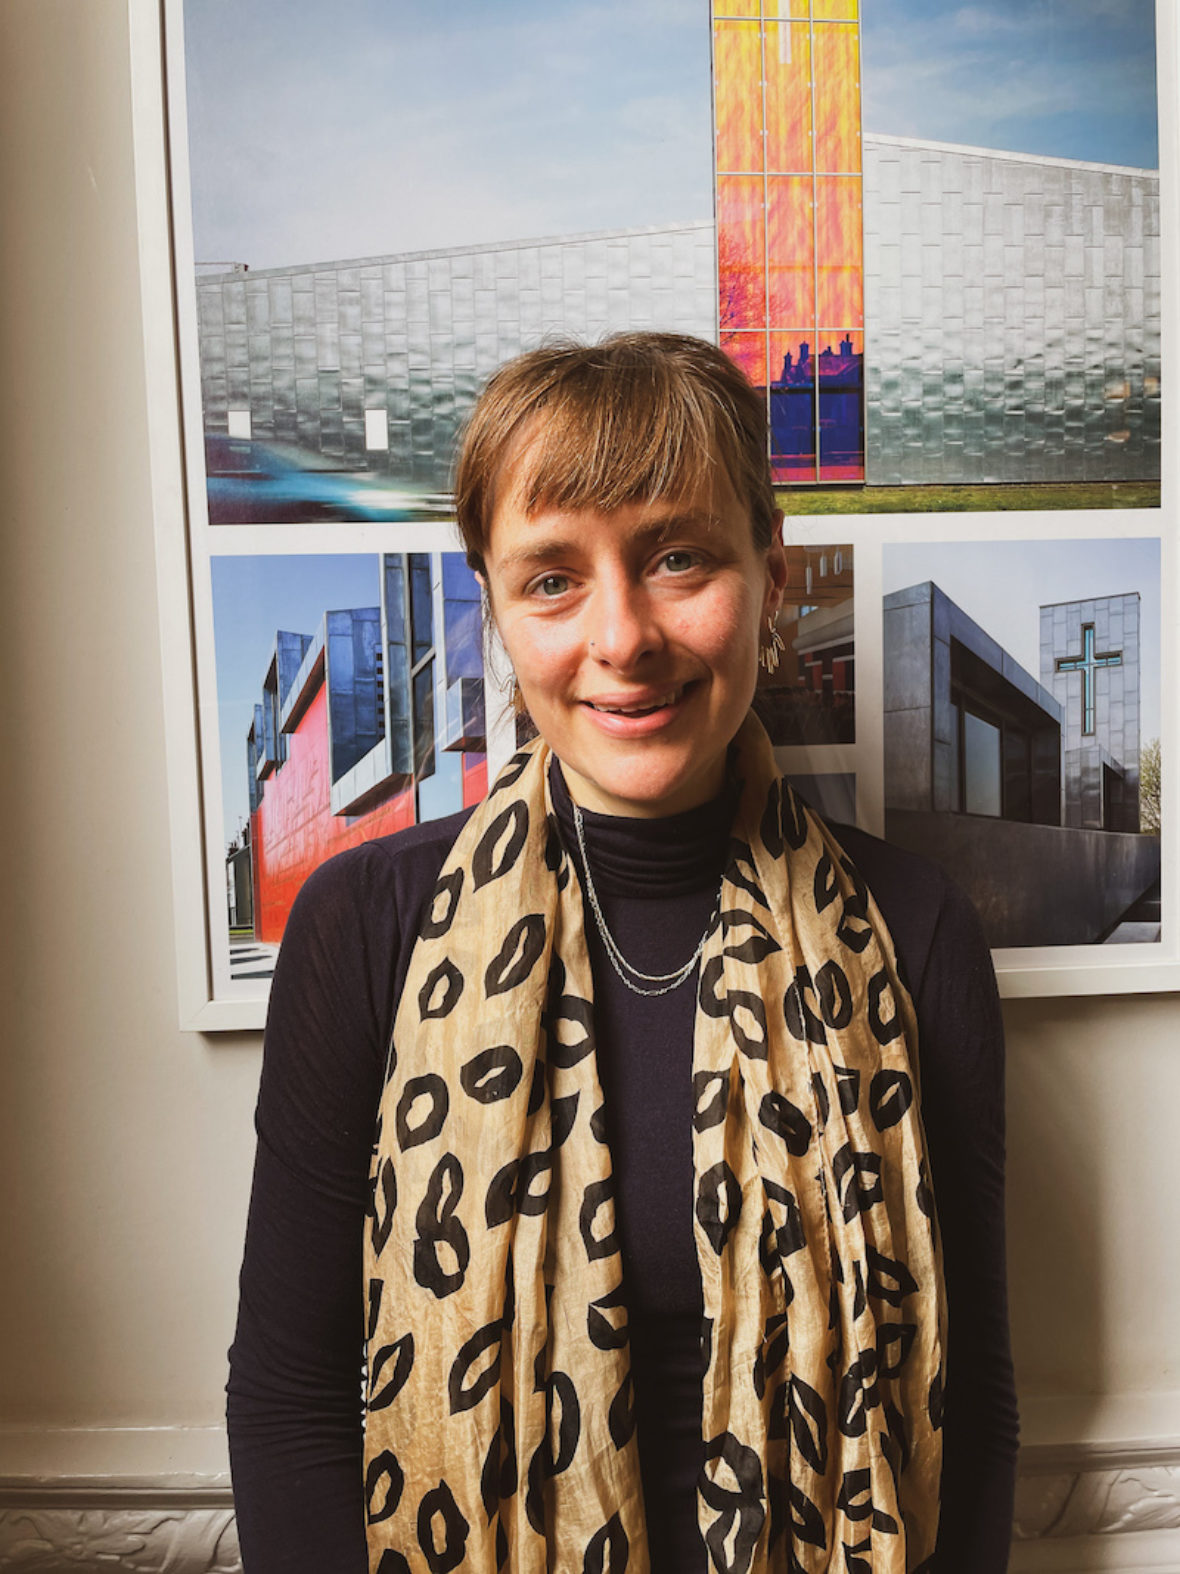 Moving from London to Norwich as a young Architect